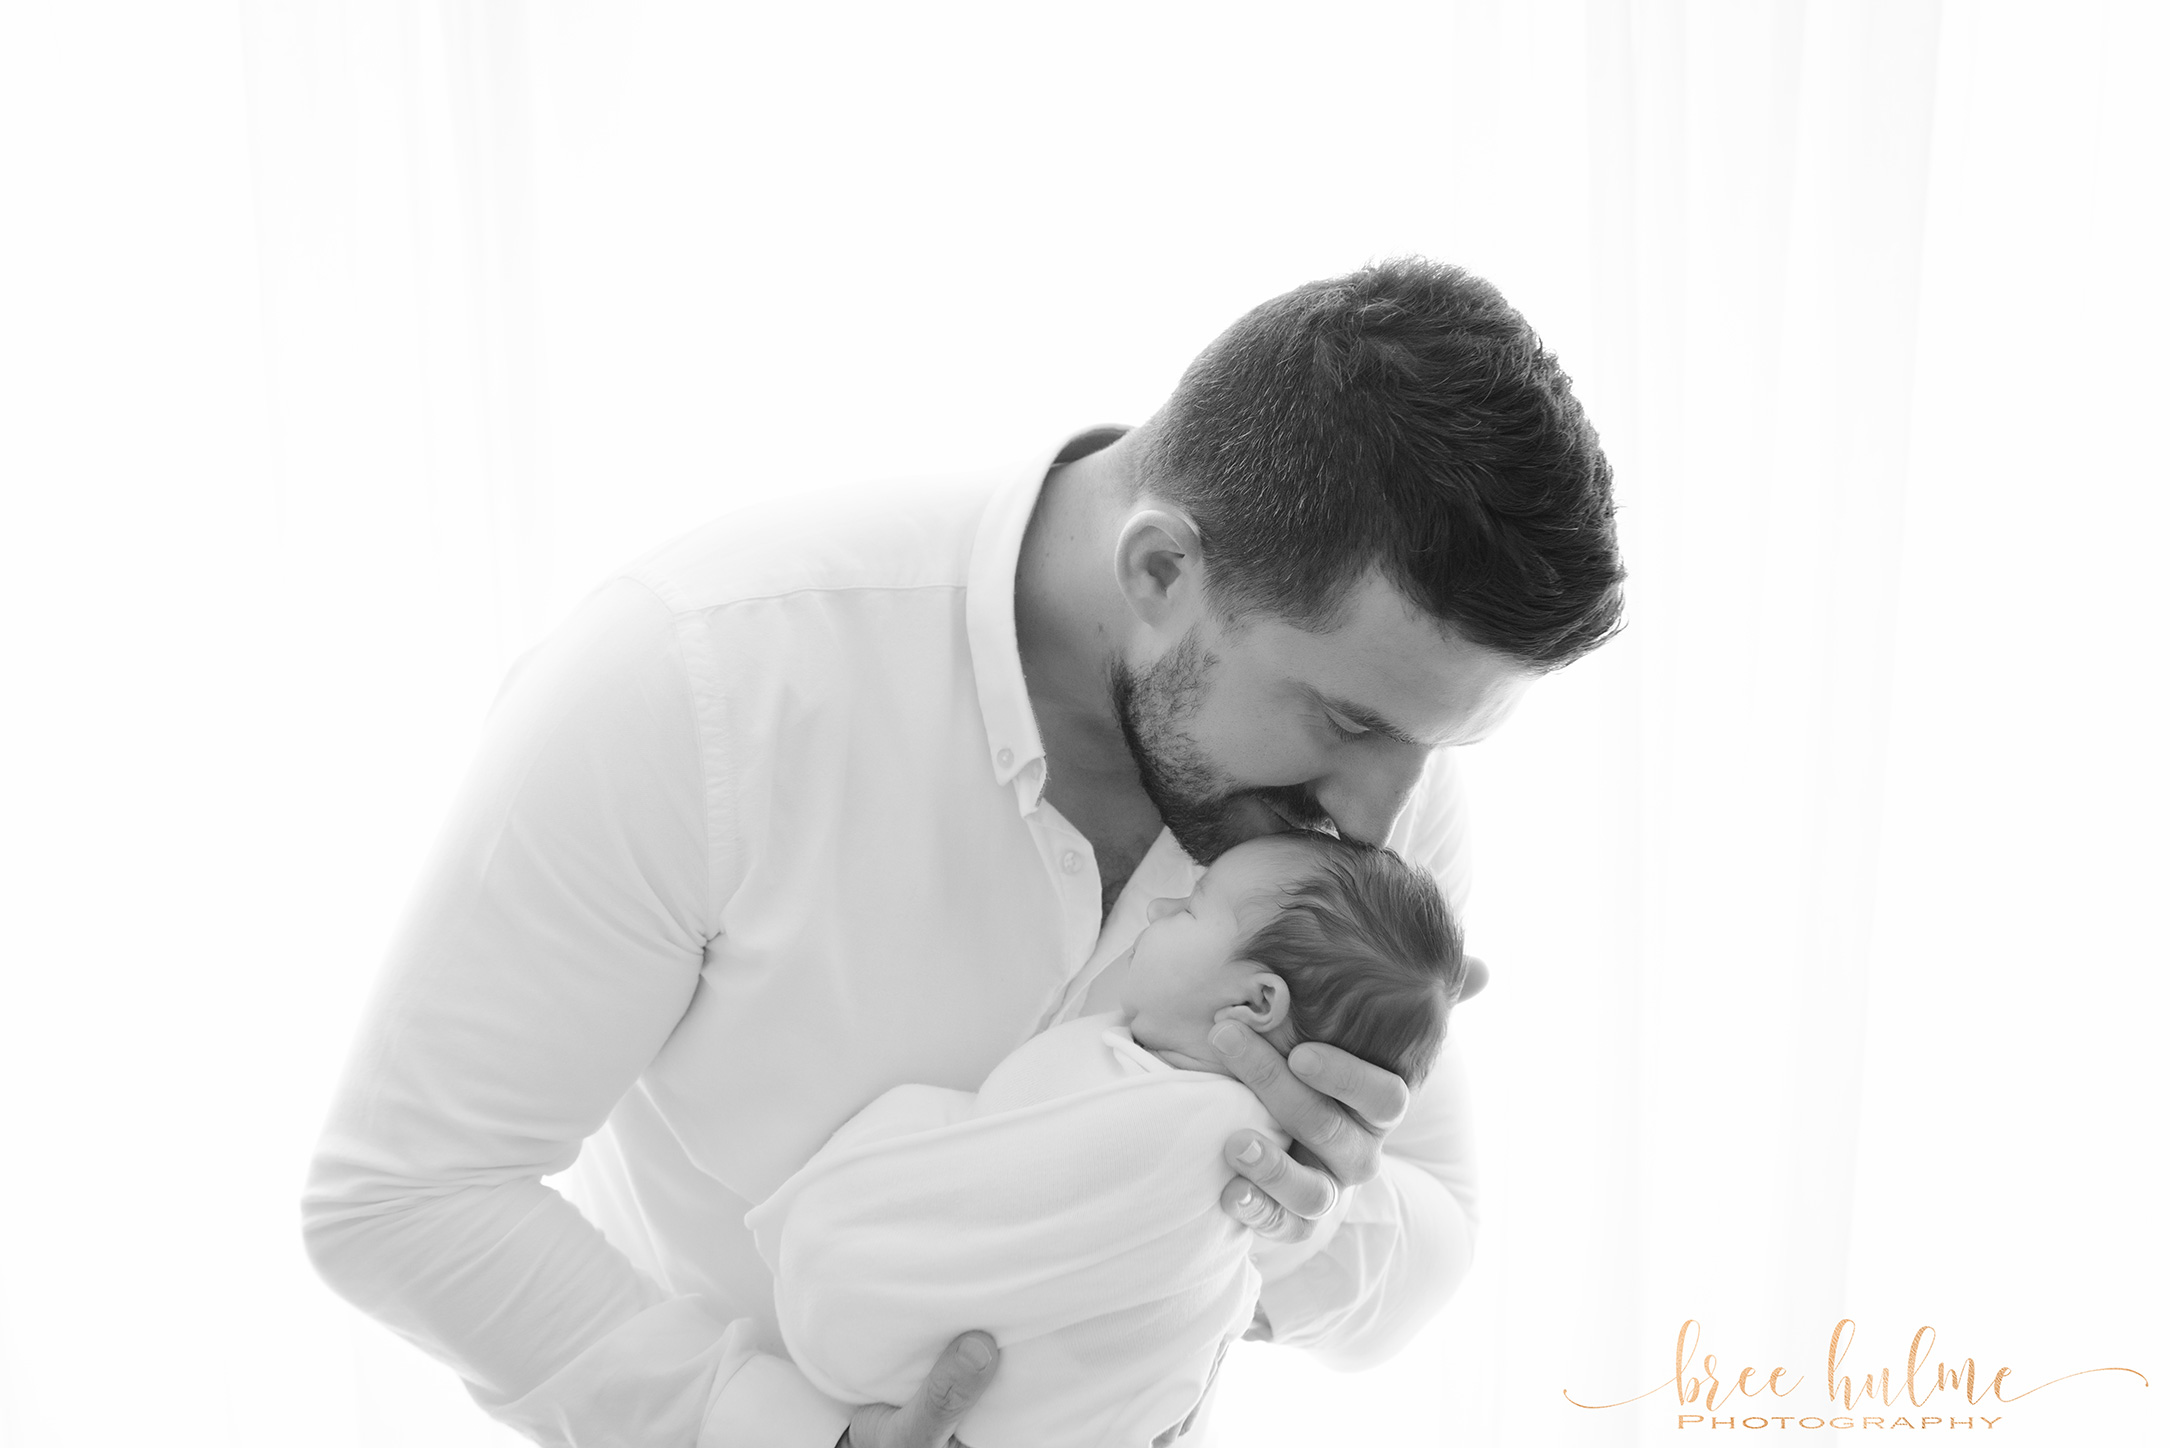 Bree Hulme Photography Sydney's premier newborn and family photographer Father and child happy father's Day